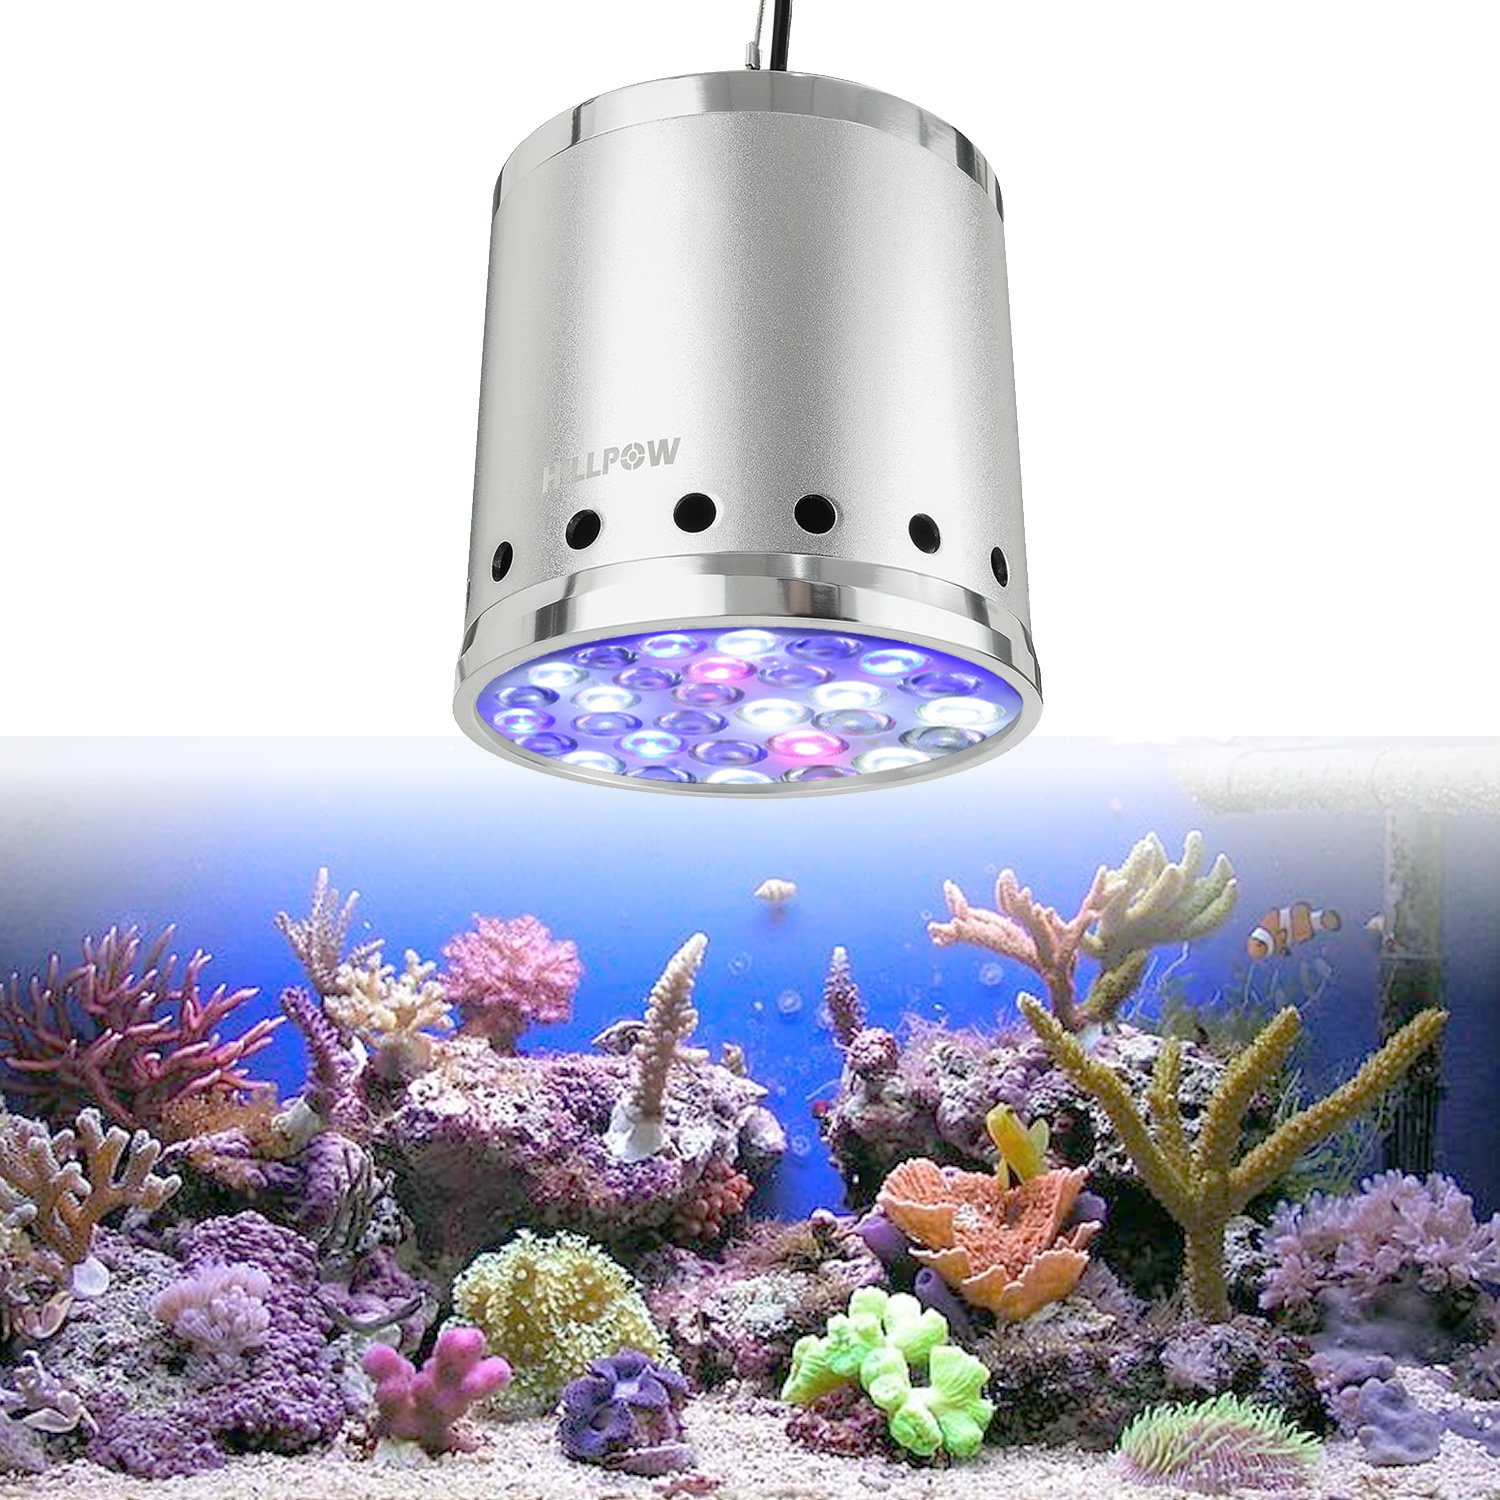 hillpow 30leds aquarium licht 90w fisch korallenlicht super sound off 30 leds mit fernbedienung. Black Bedroom Furniture Sets. Home Design Ideas